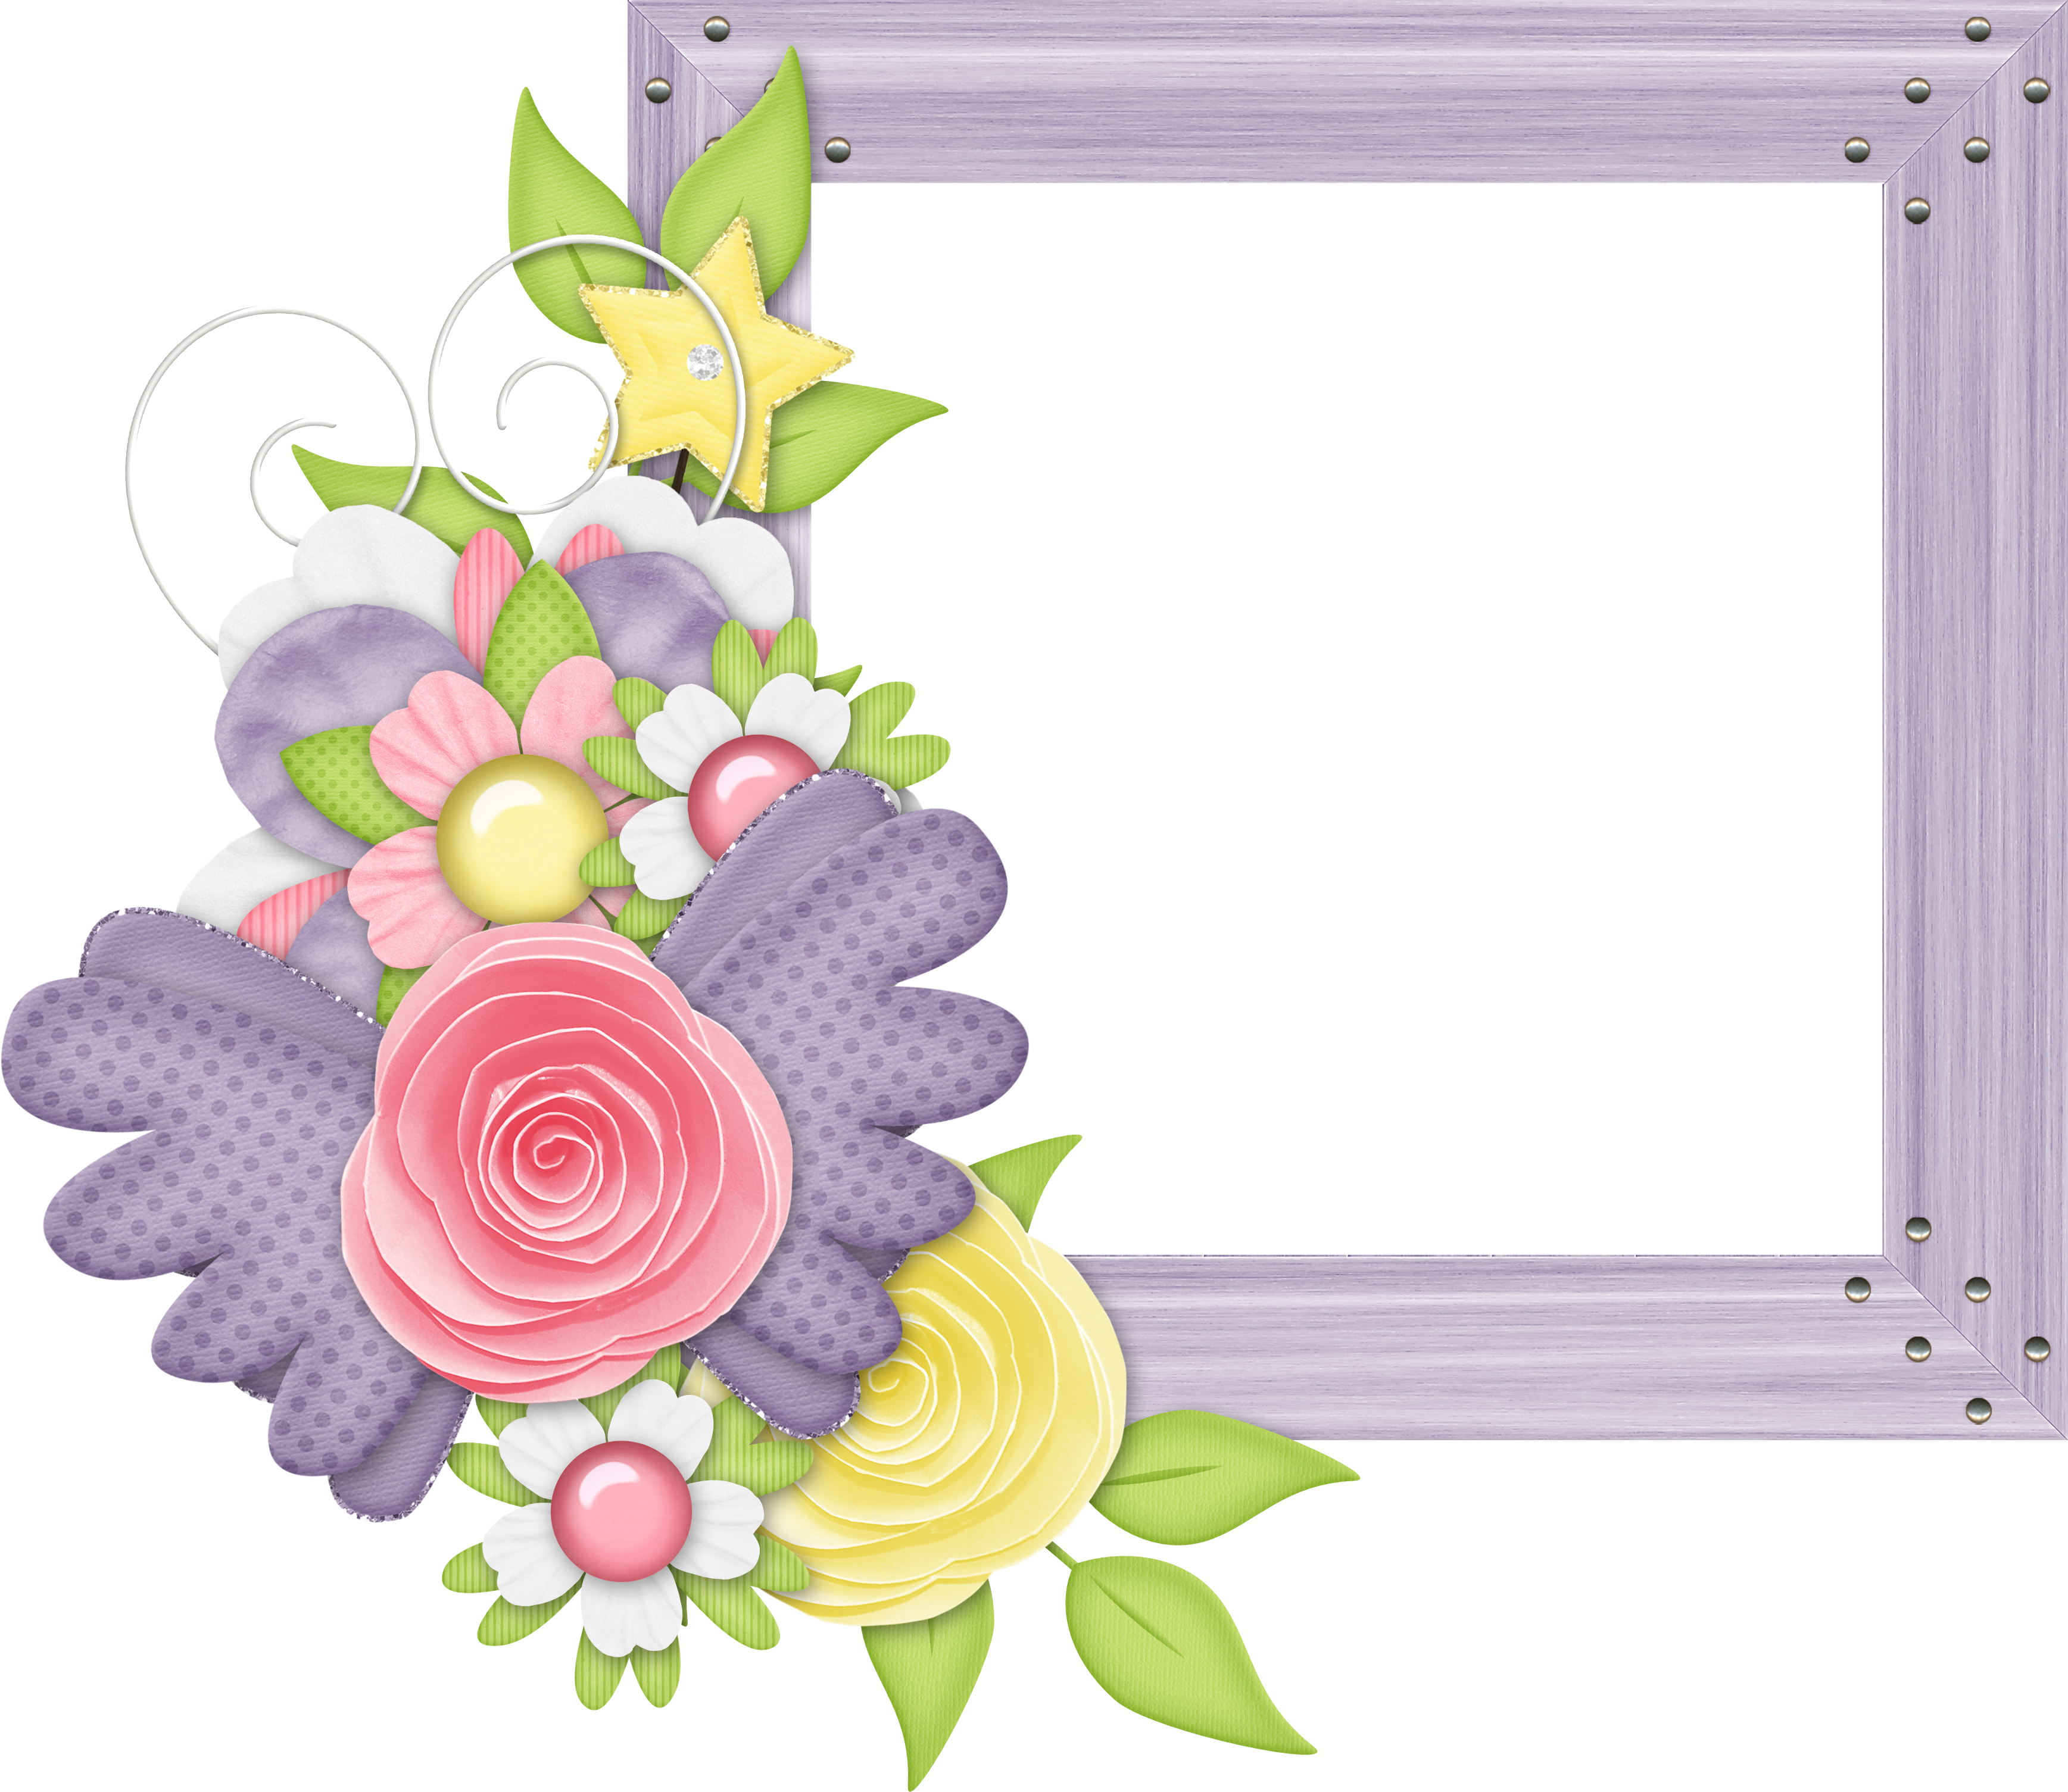 Cute flower border clipart jpg download Cute Large Design Purple Transparent Frame with Flowers   Gallery ... jpg download